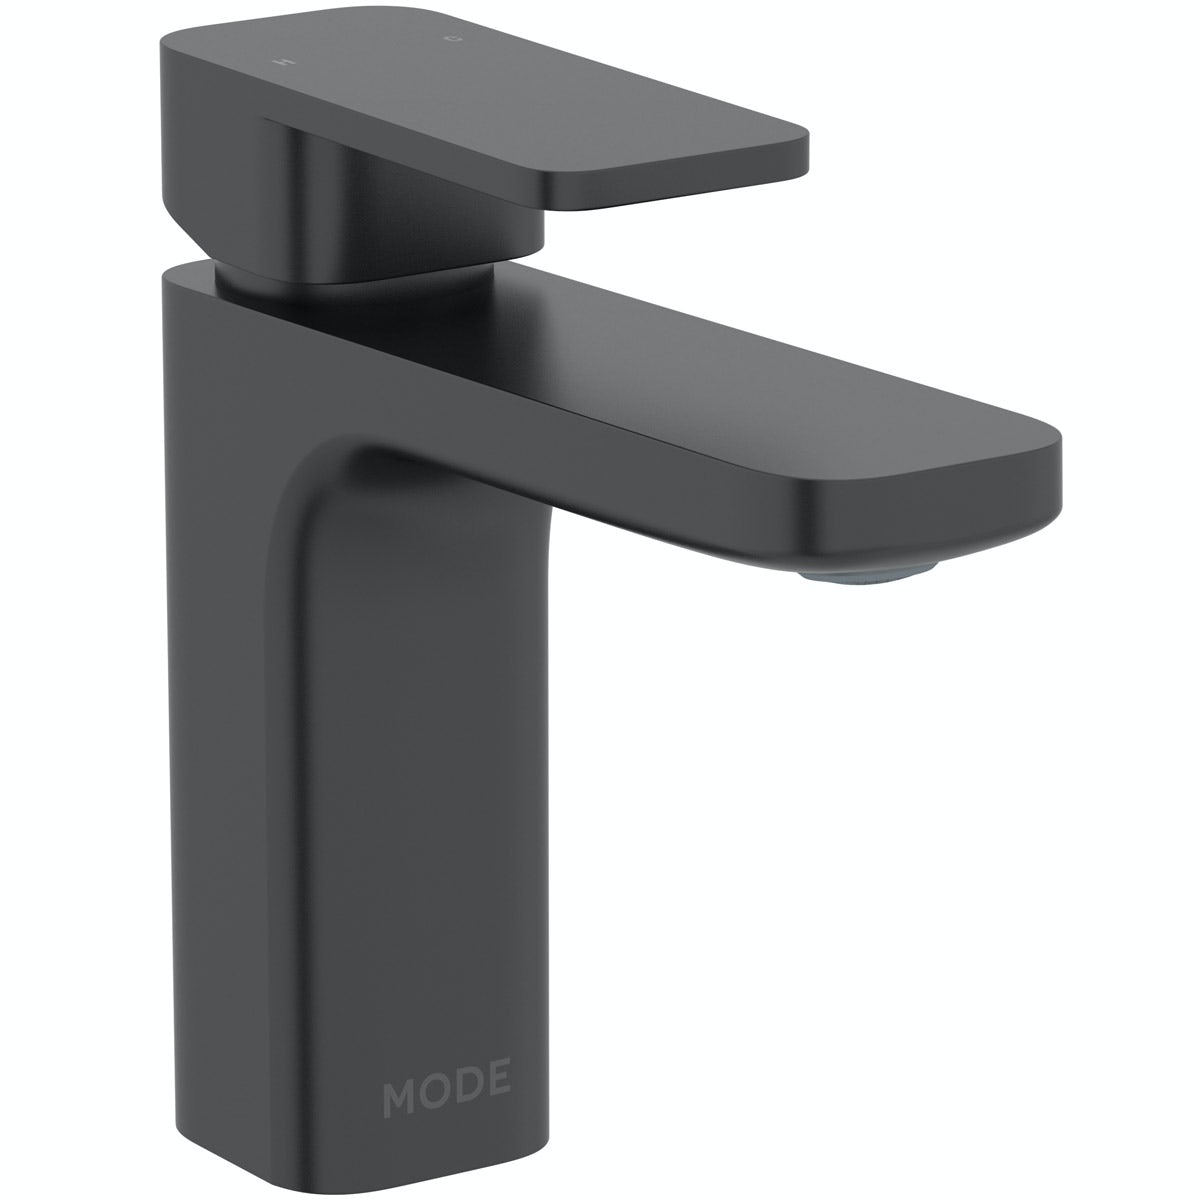 Mode Spencer square black basin mixer tap